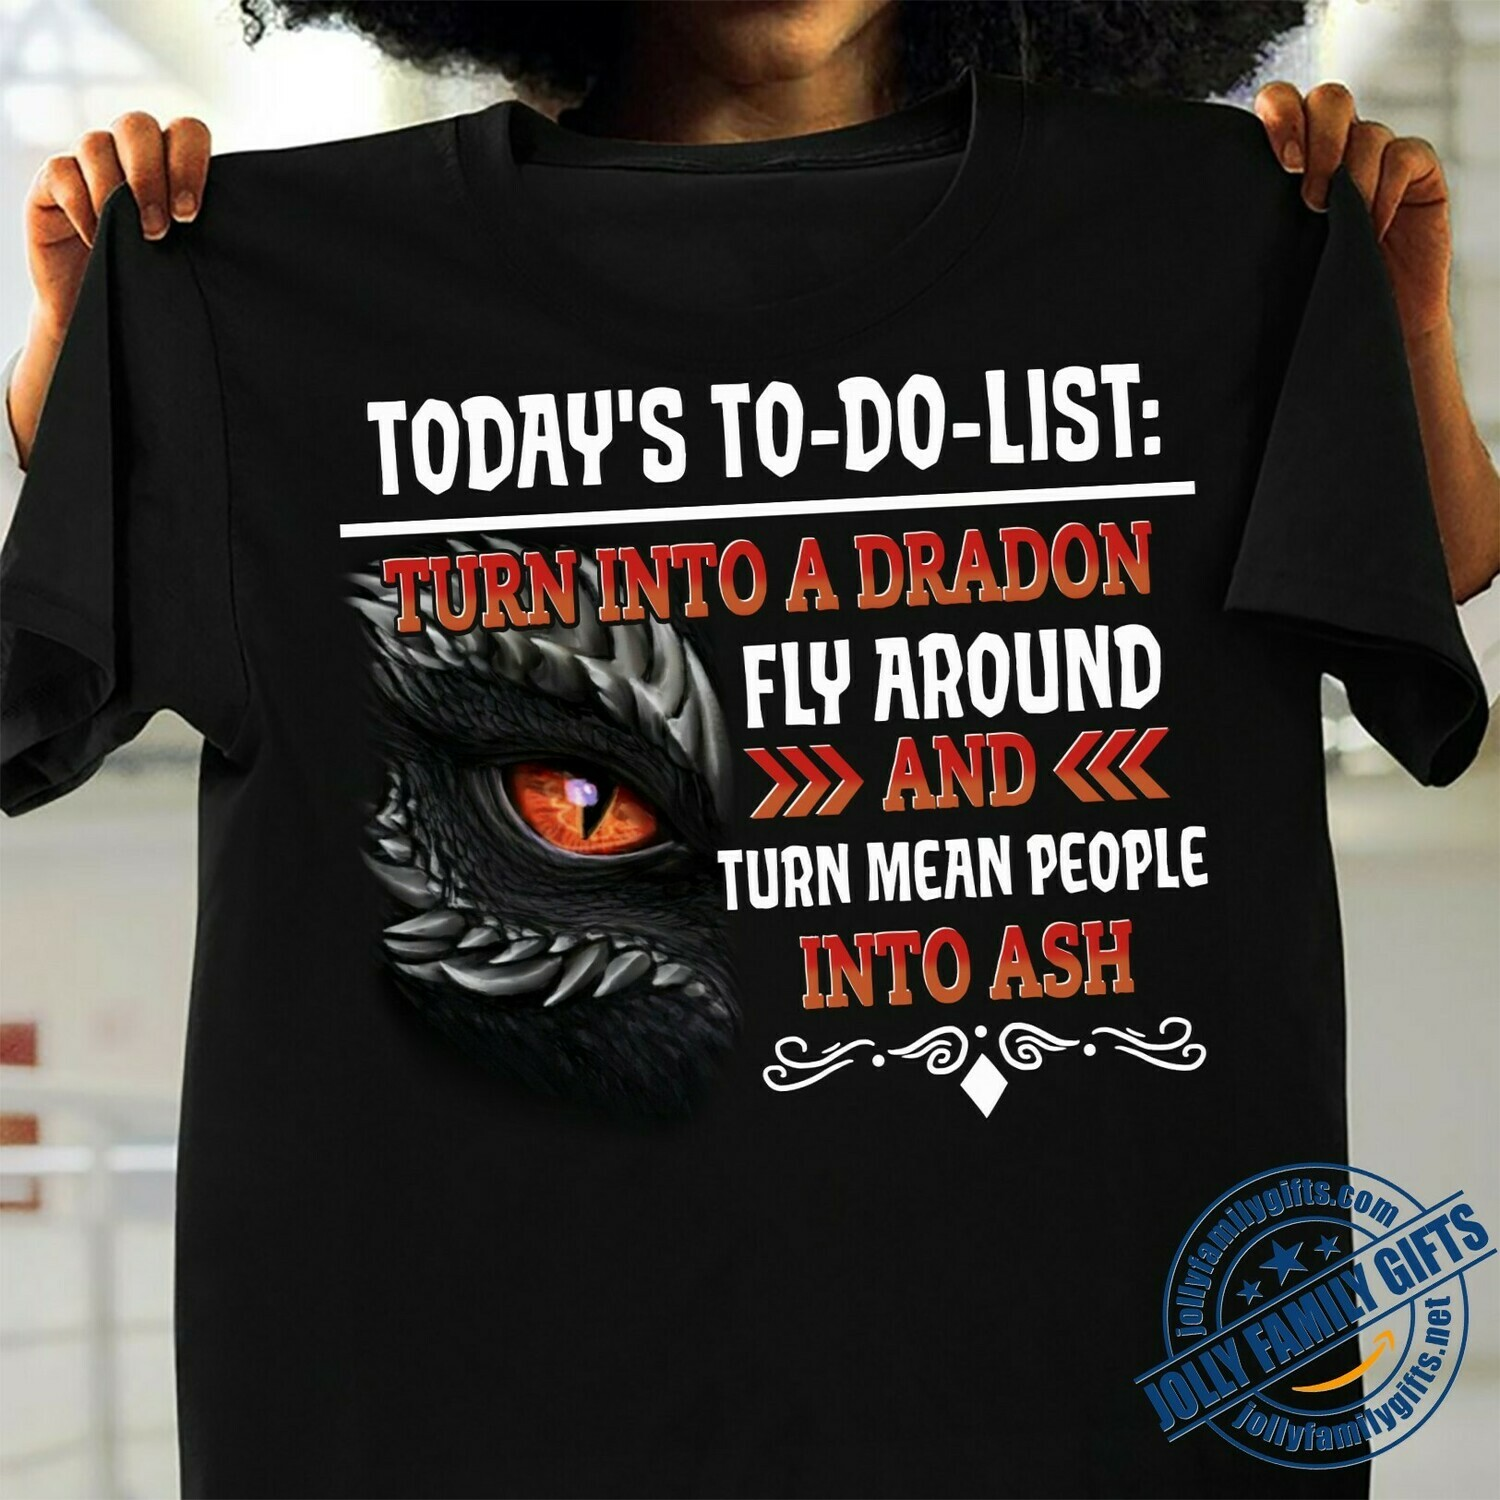 Today's To-Do-List Turn Into A Dragon Fly Around And Turn Mean People Into Ash T-shirt Unisex T-Shirt Hoodie Sweatshirt Sweater Plus Size for Ladies Women Men Kids Youth Gifts Tee Jolly Family Gifts